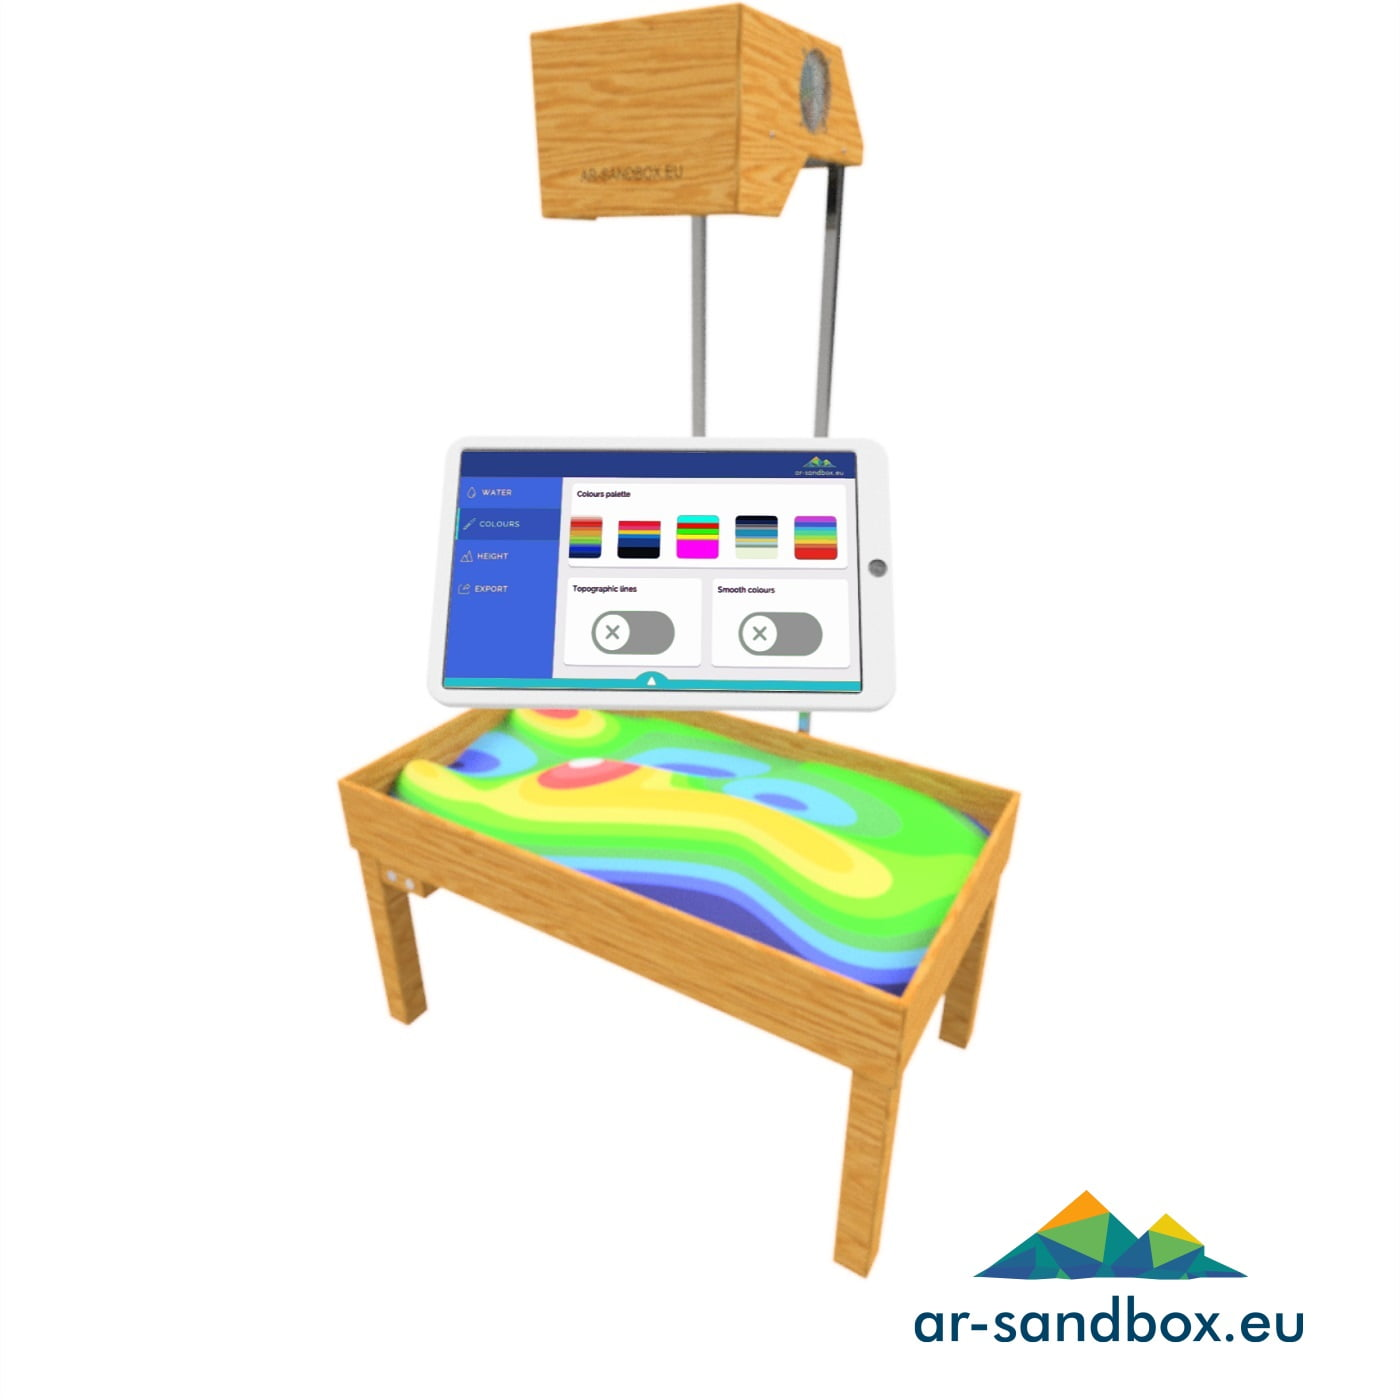 Augmented Reality Sandbox DIY